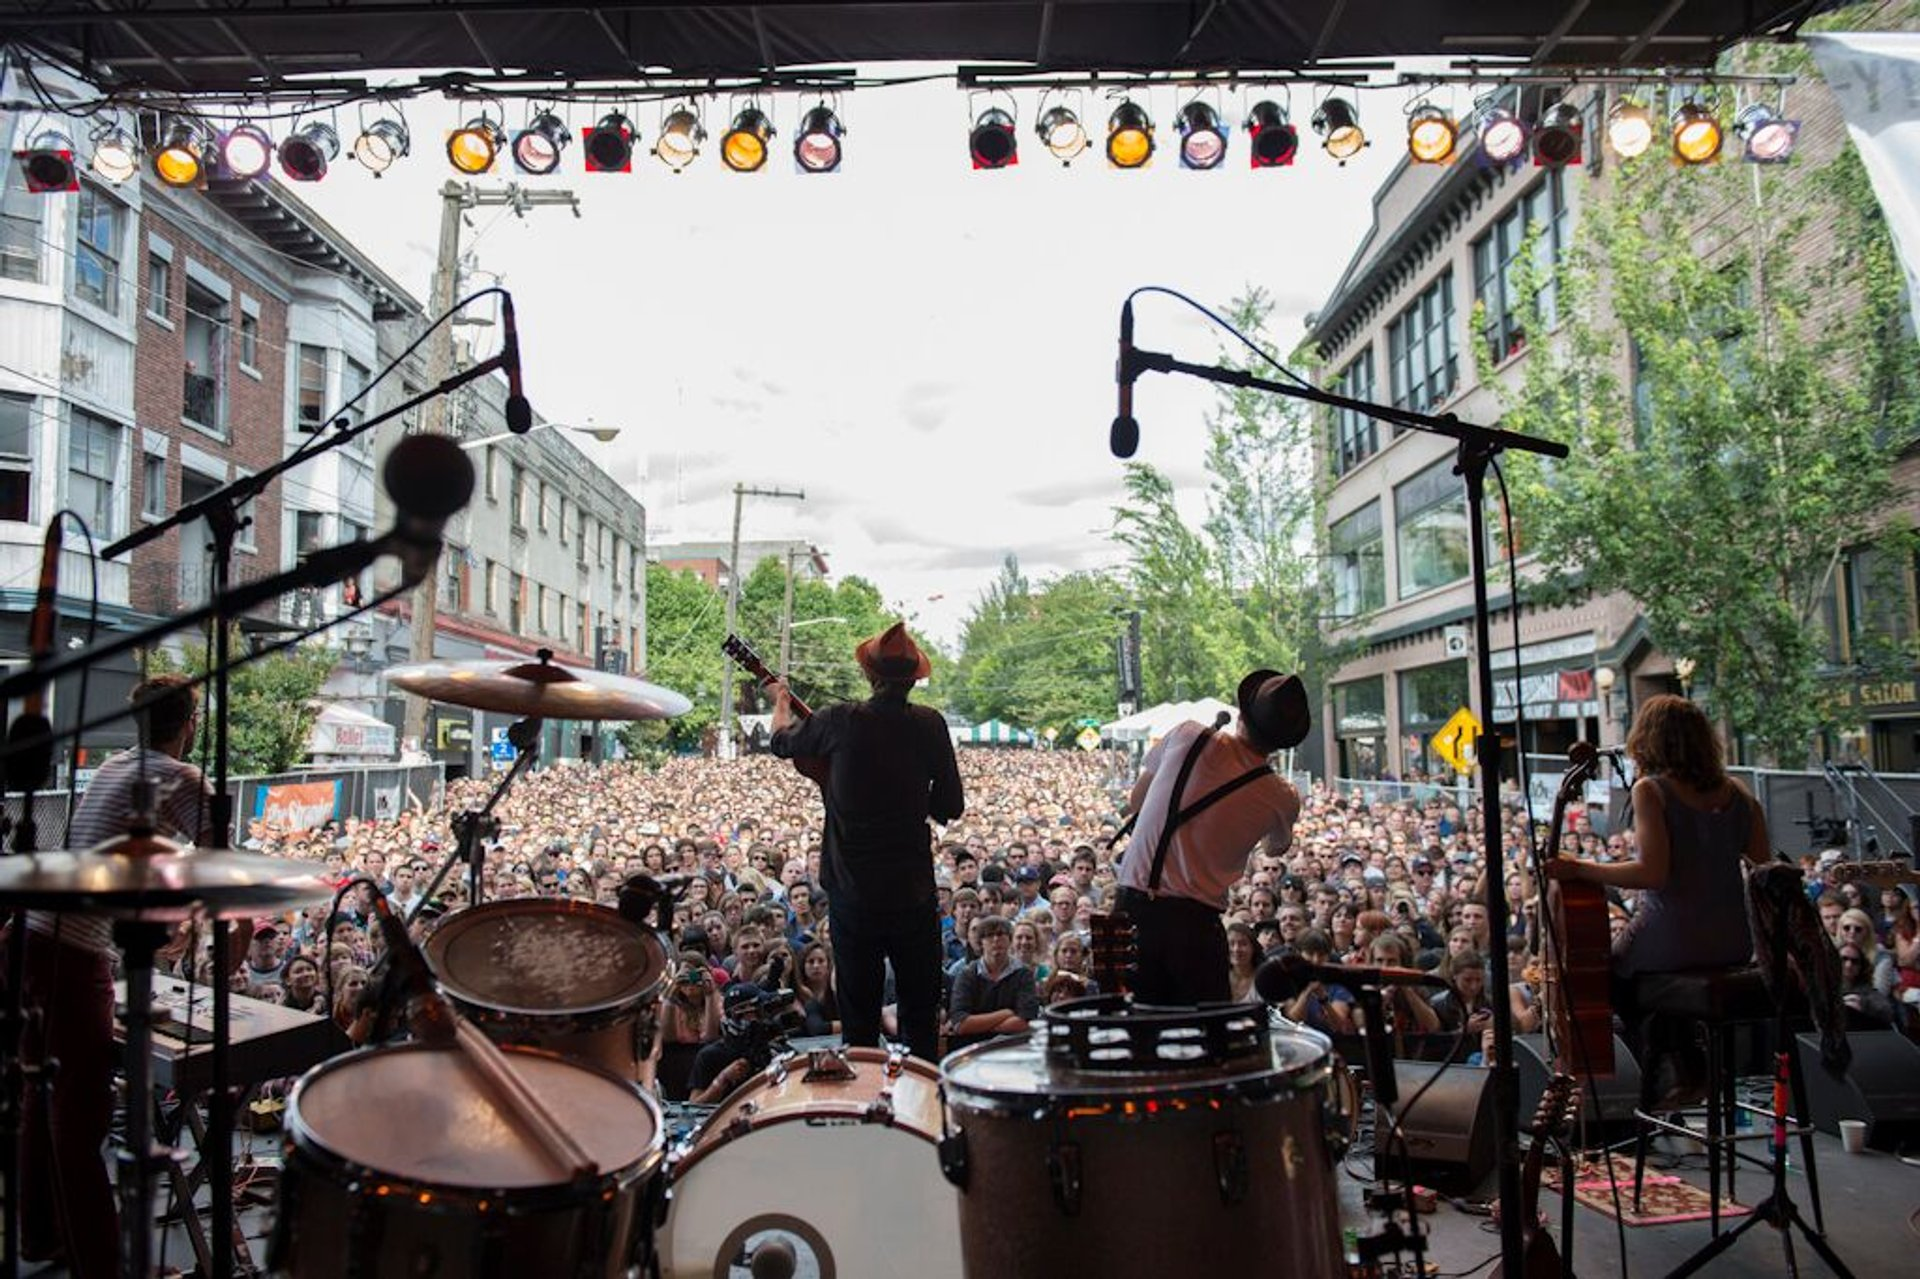 Capitol Hill Block Party in Seattle 2019 - Best Time